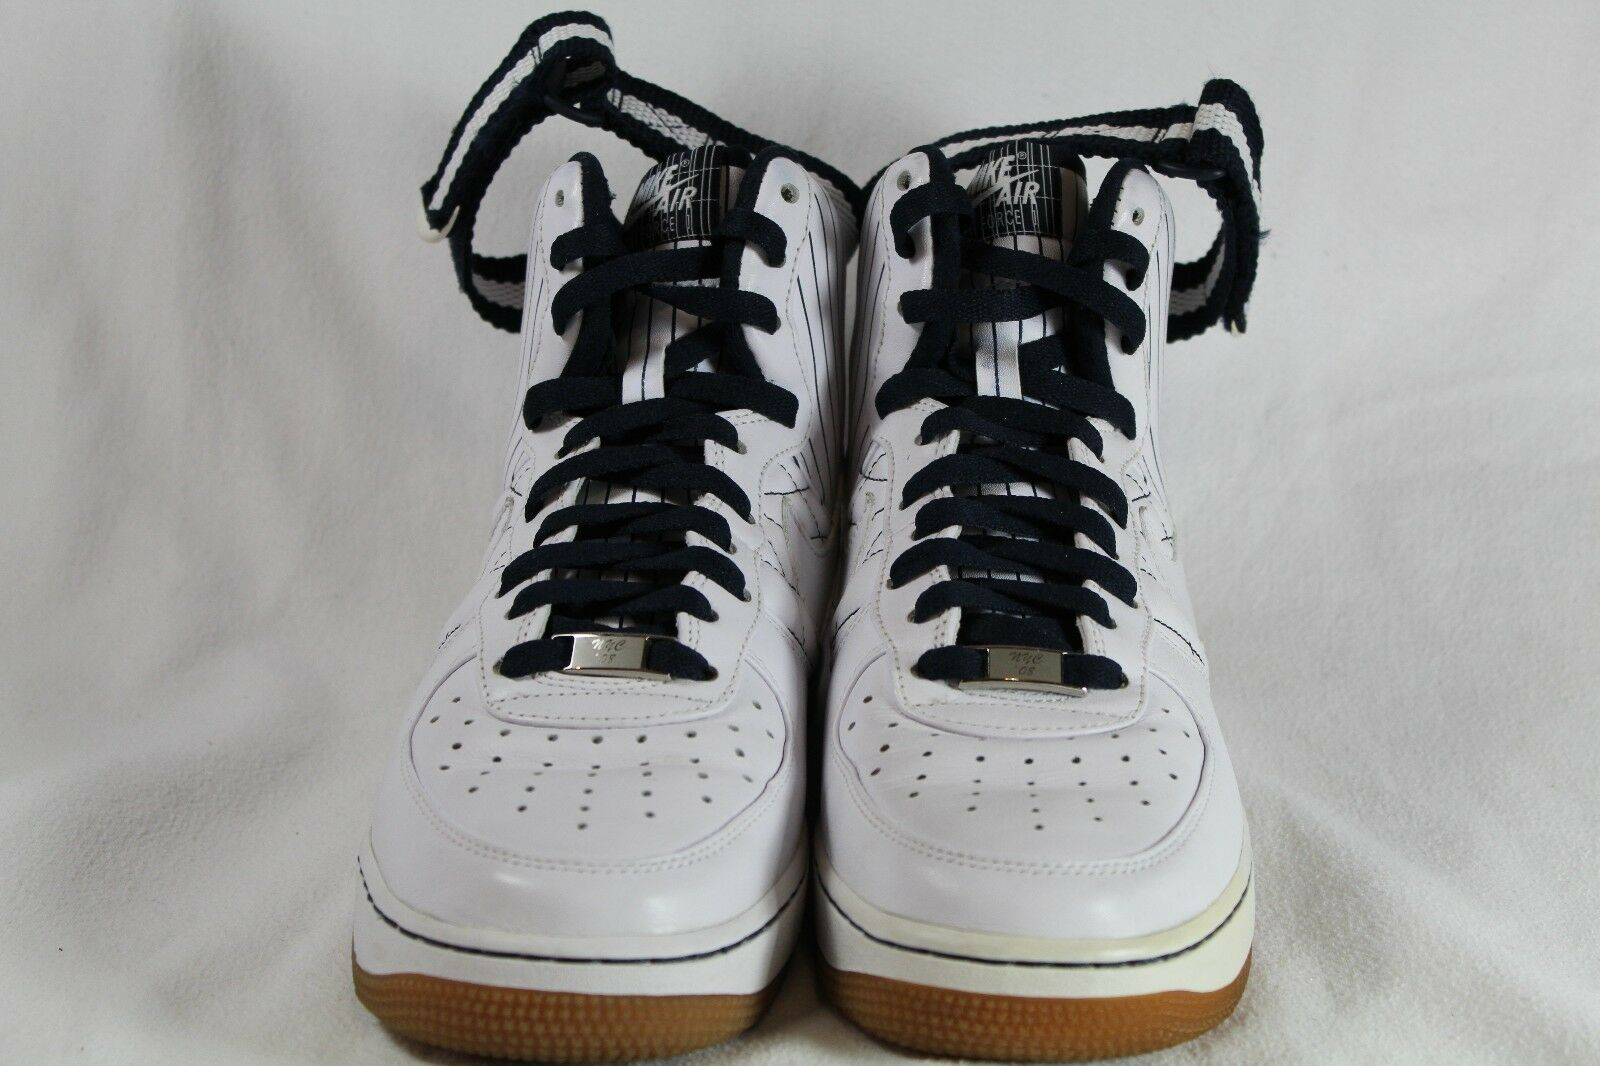 Nike Air Force 1 Yankees NYC Dimensione 8 Pre-Owned Pre-Owned Pre-Owned Worn Once 332490-111 5921e9